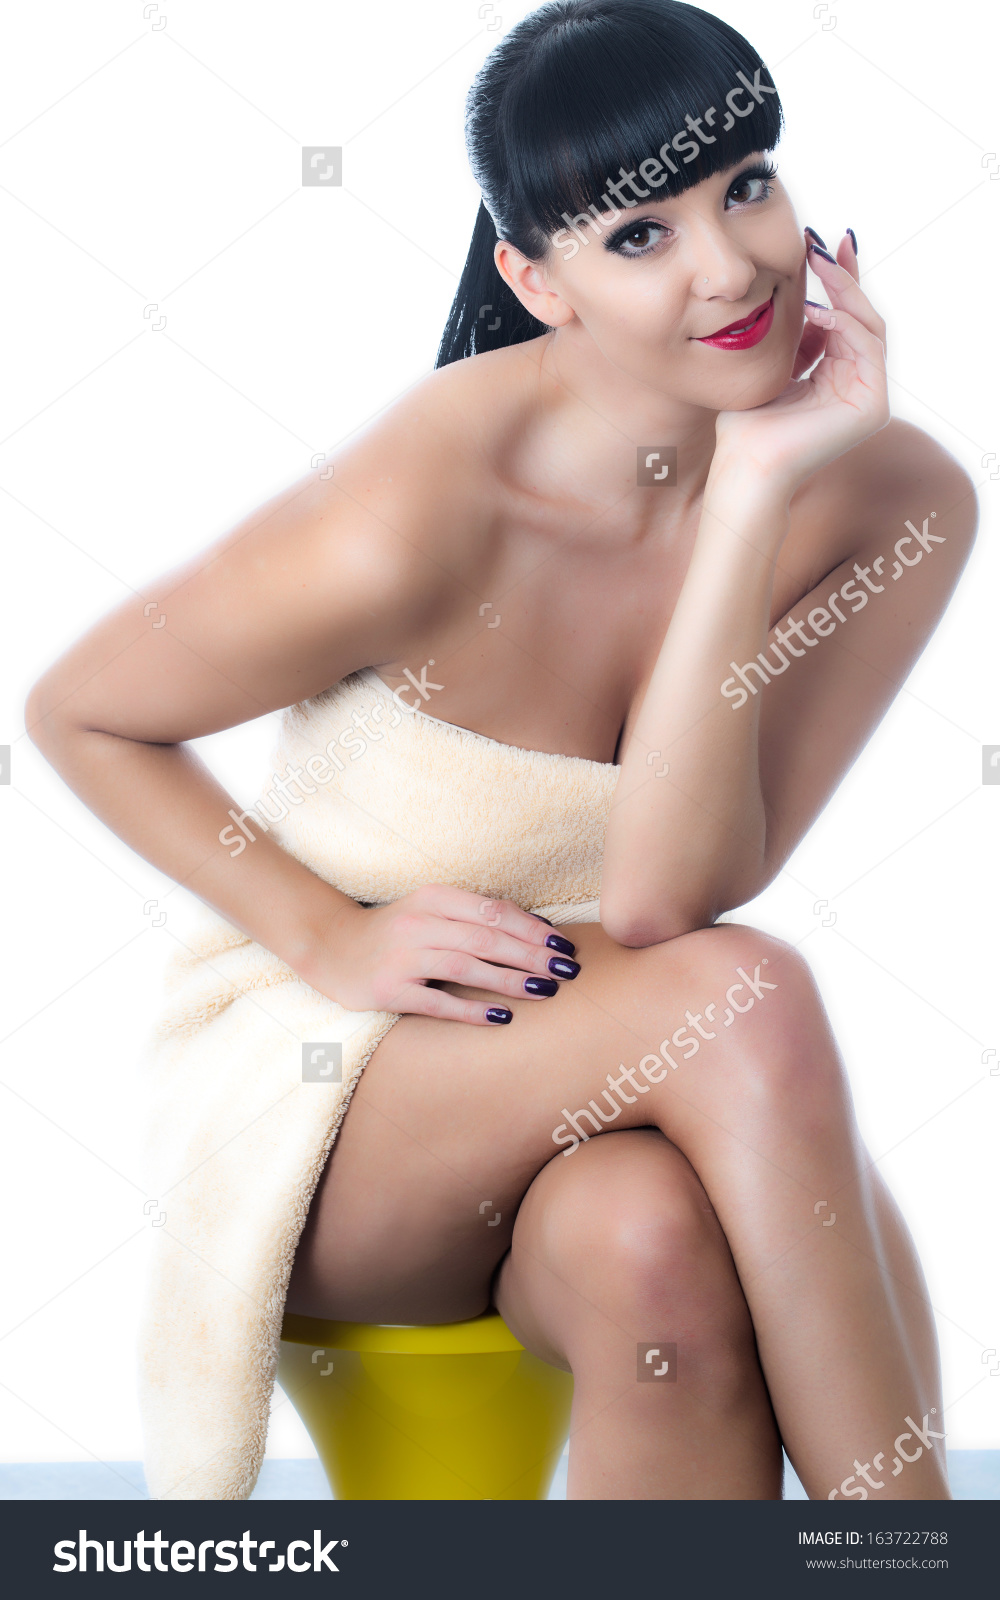 stock-photo-thoughtful-young-woman-wearing-a-towel-163722788.jpg